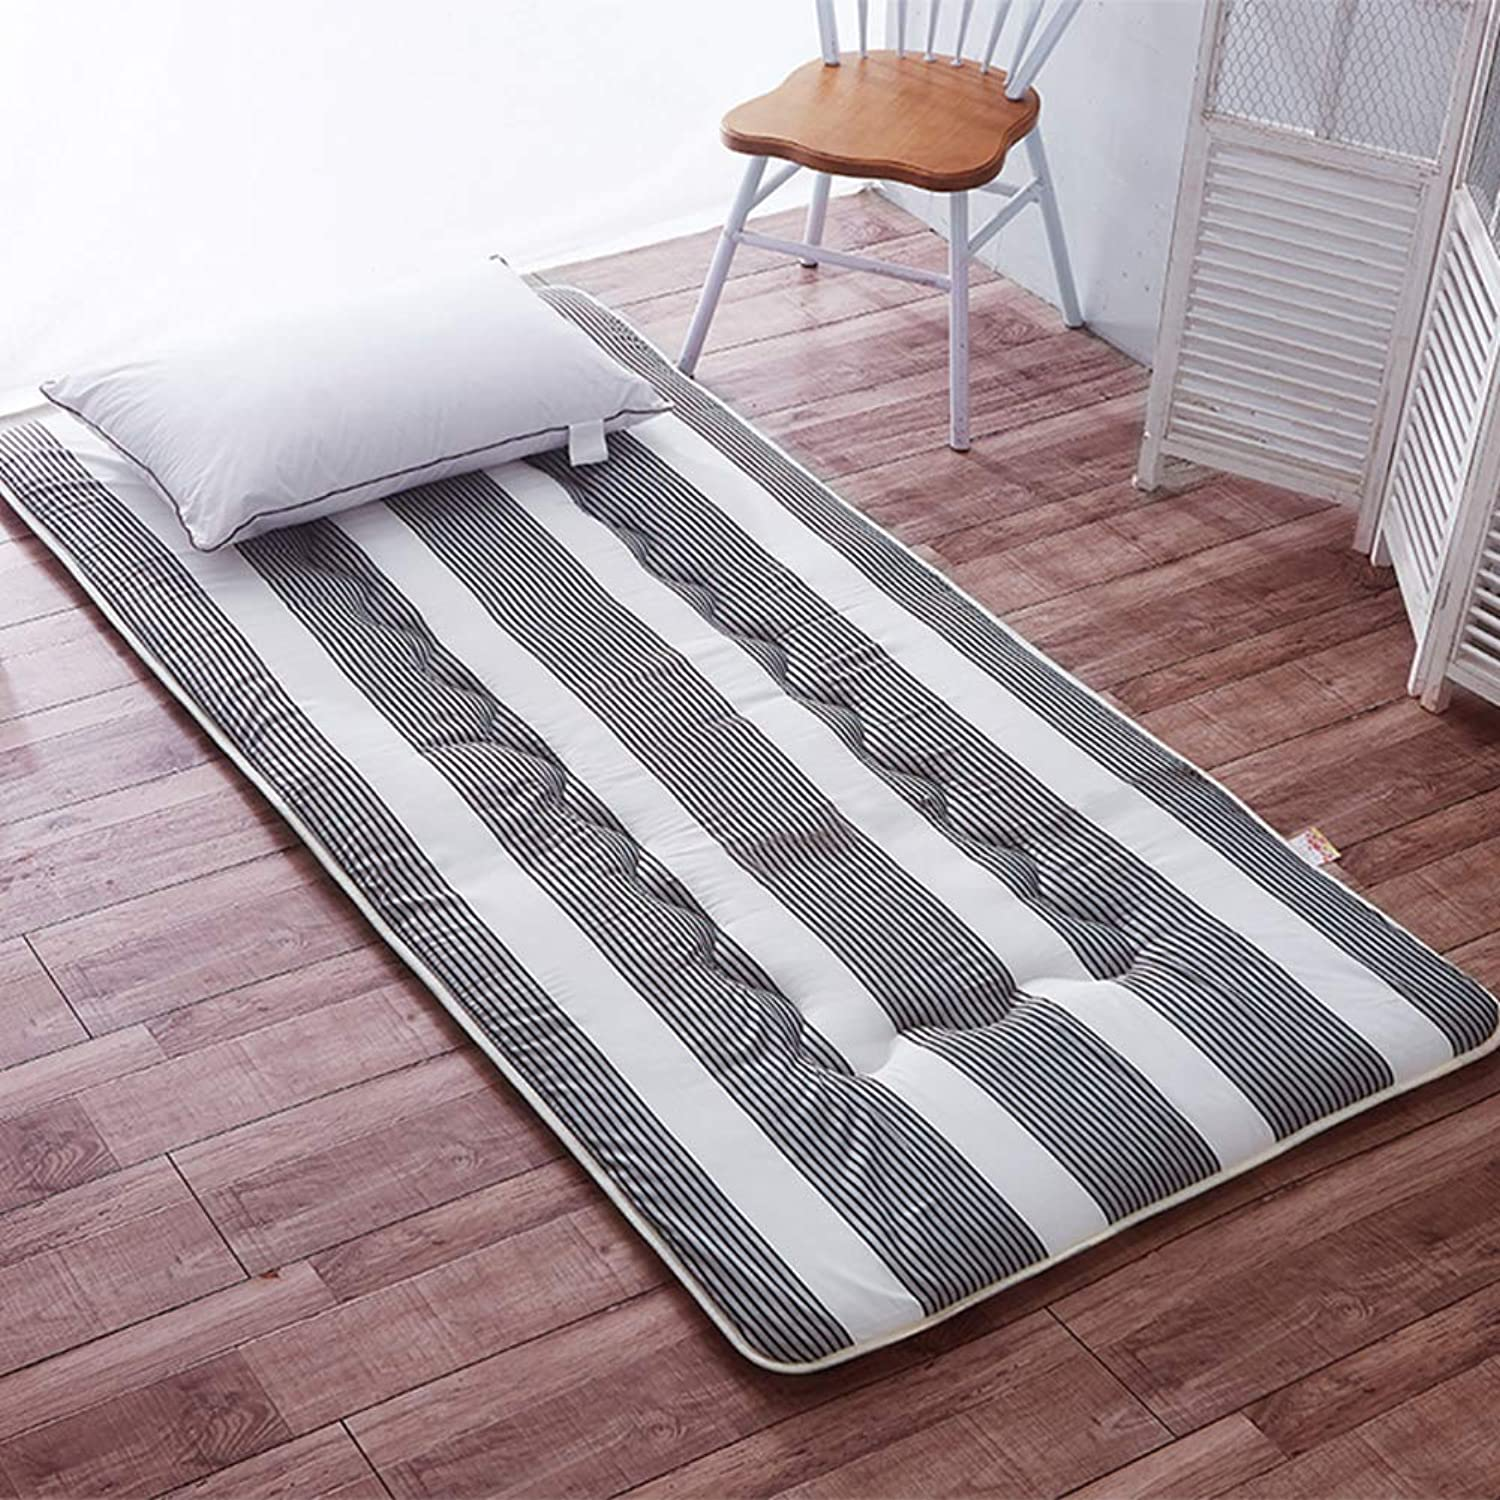 Multi-Function Tatami Mattress, Thin 4cm Foldable Flannel Mattress Topper Breathable Japanese Bed roll Multi-Size Floor mat-A 90x200x4cm